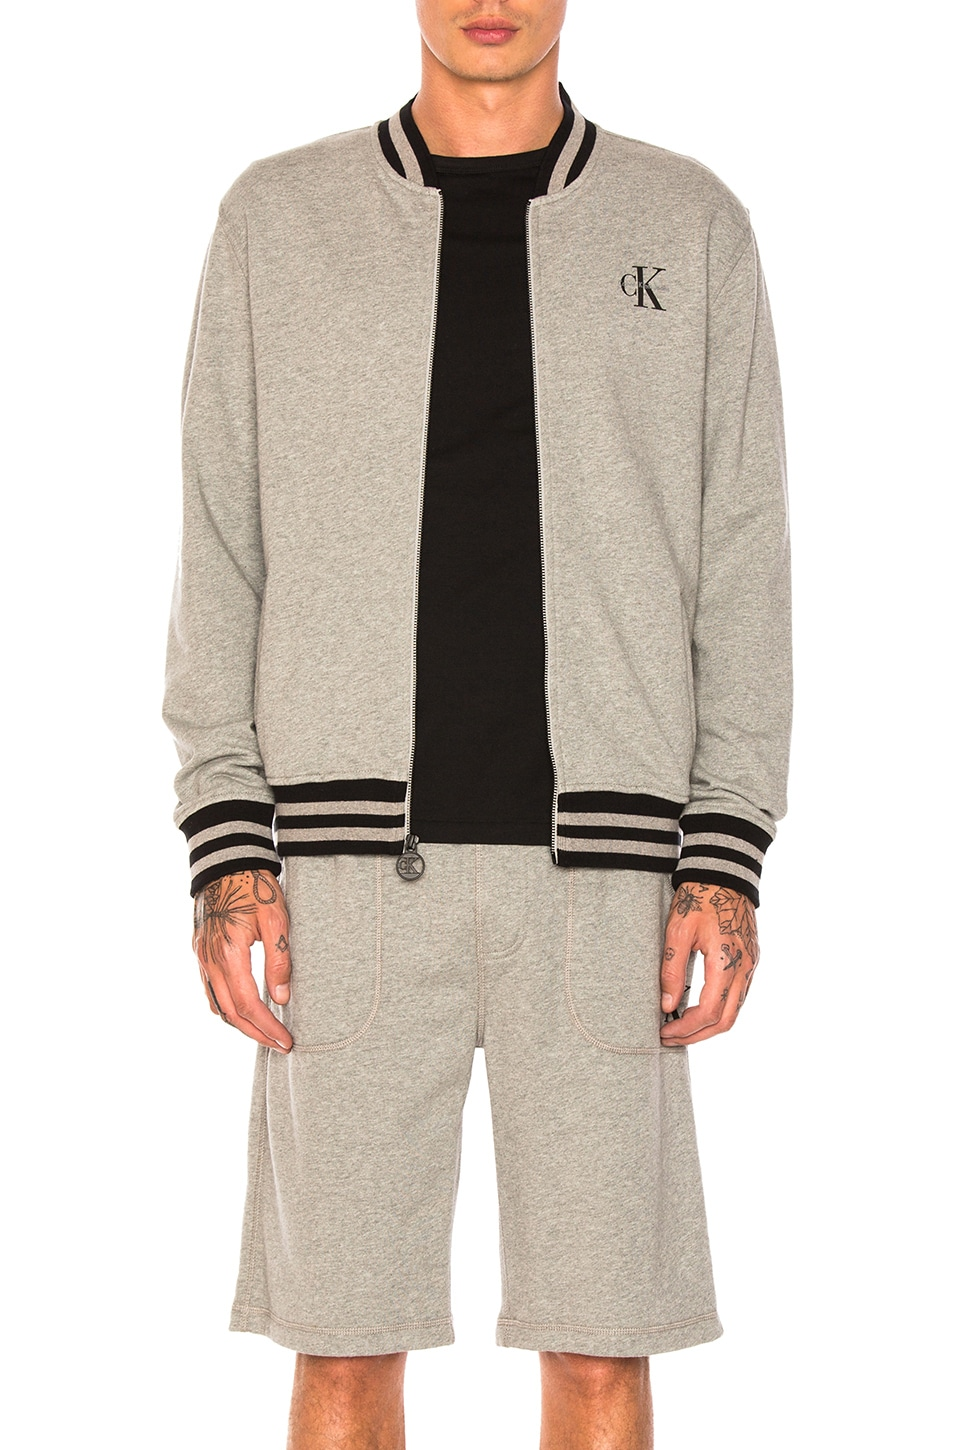 Reissue Tipping Baseball Jacket by Calvin Klein